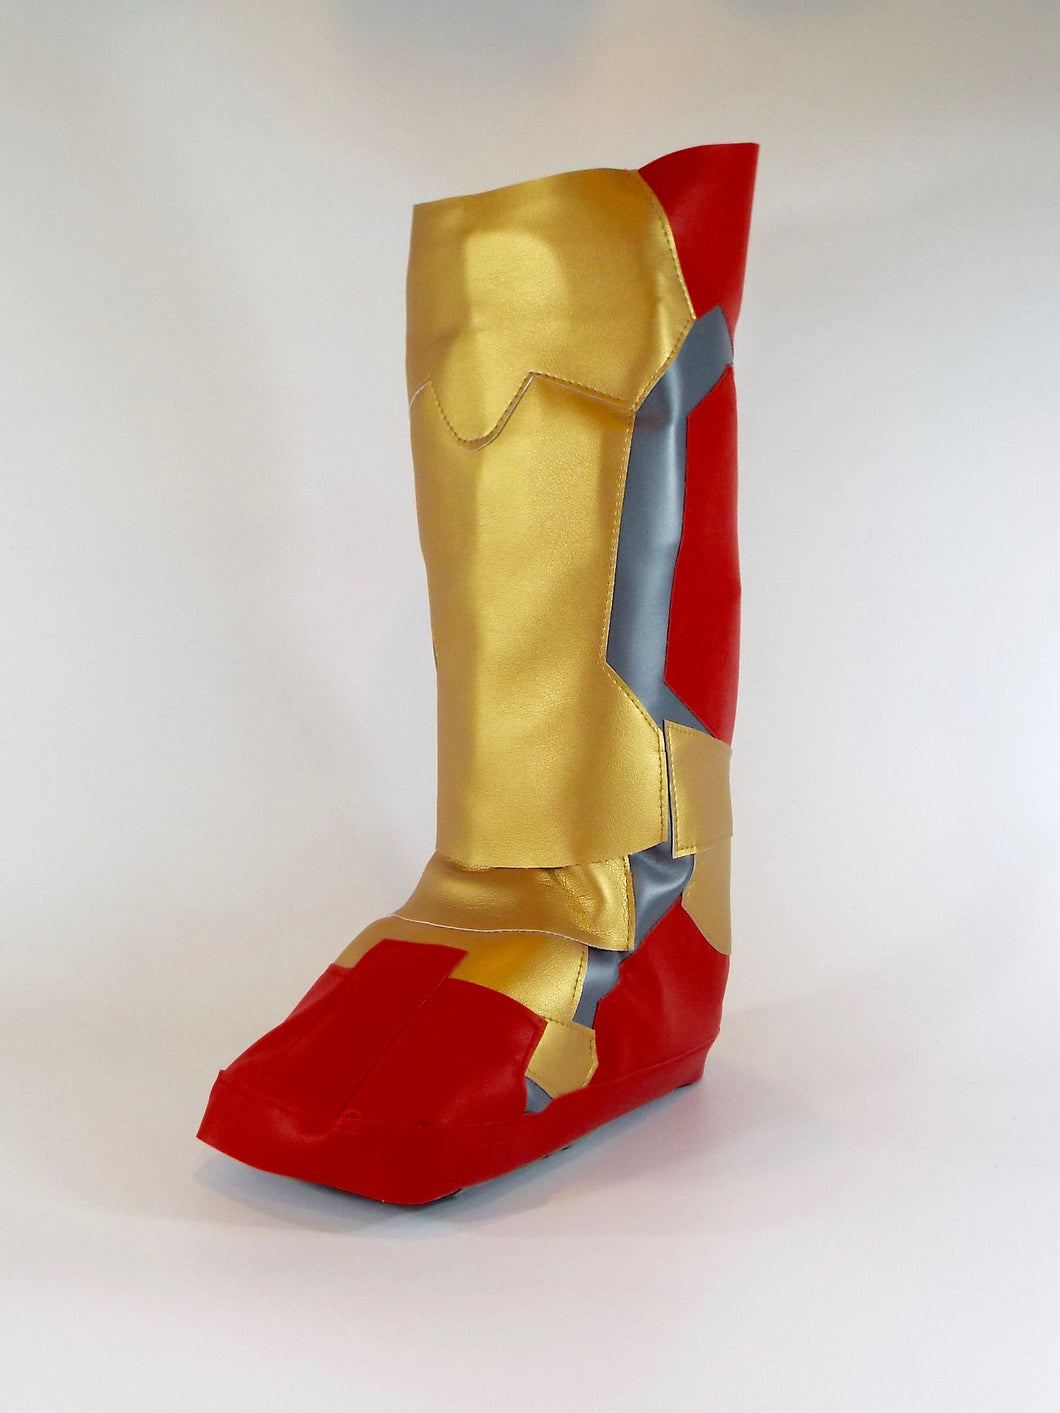 Super hero ironman style cover to go over a medical boot